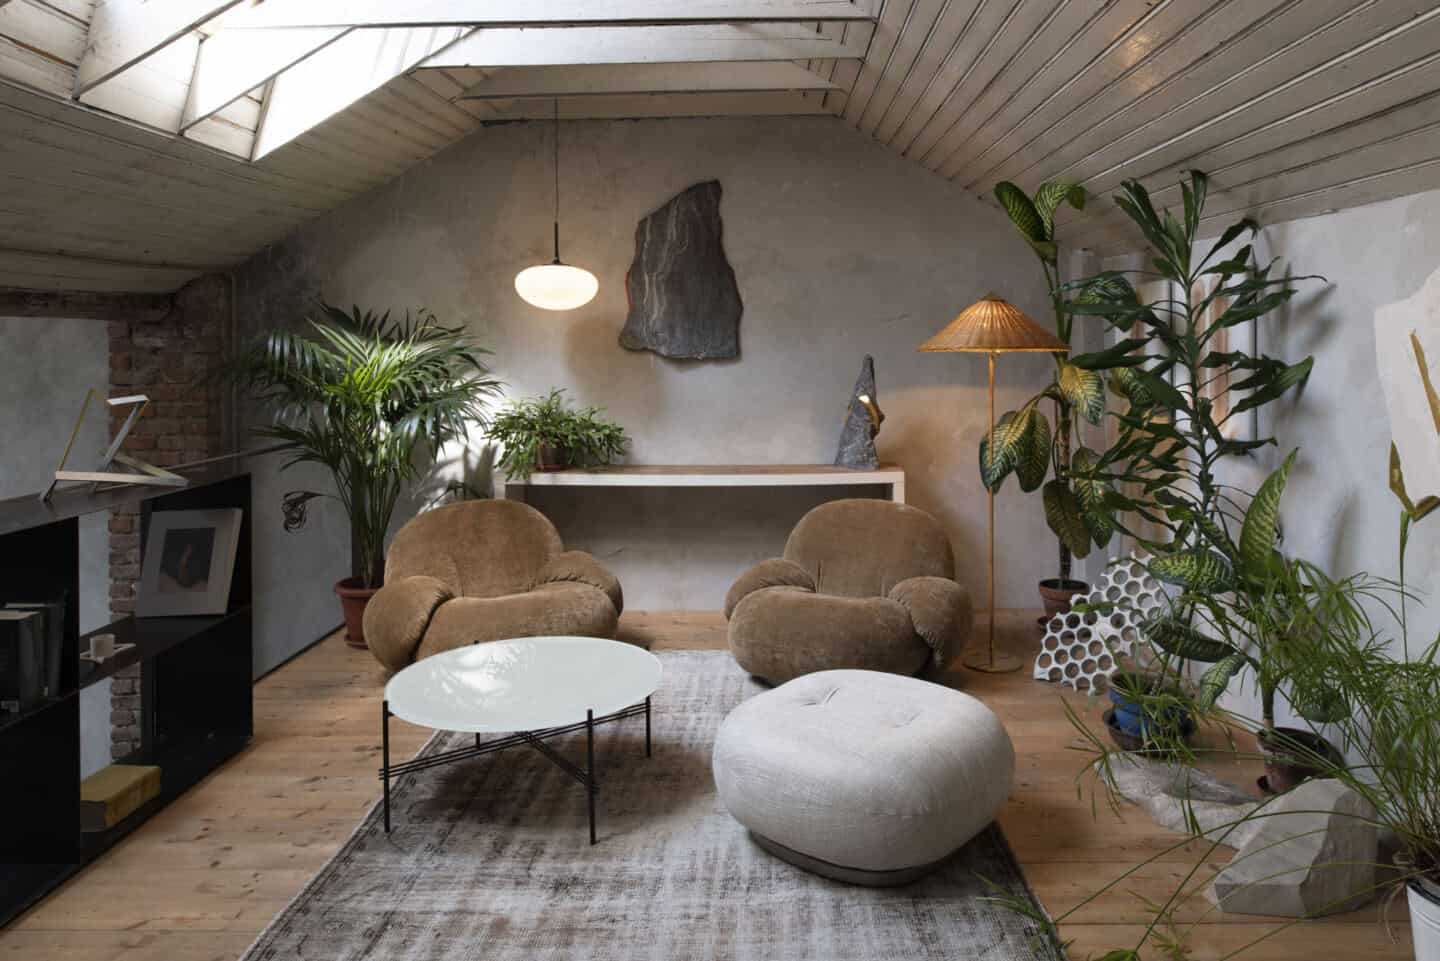 A couple of Pacha lounge chairs by Gubi sit in a loft room full of plants and natural textures. A perfect example of how to use organic shapes in interiors